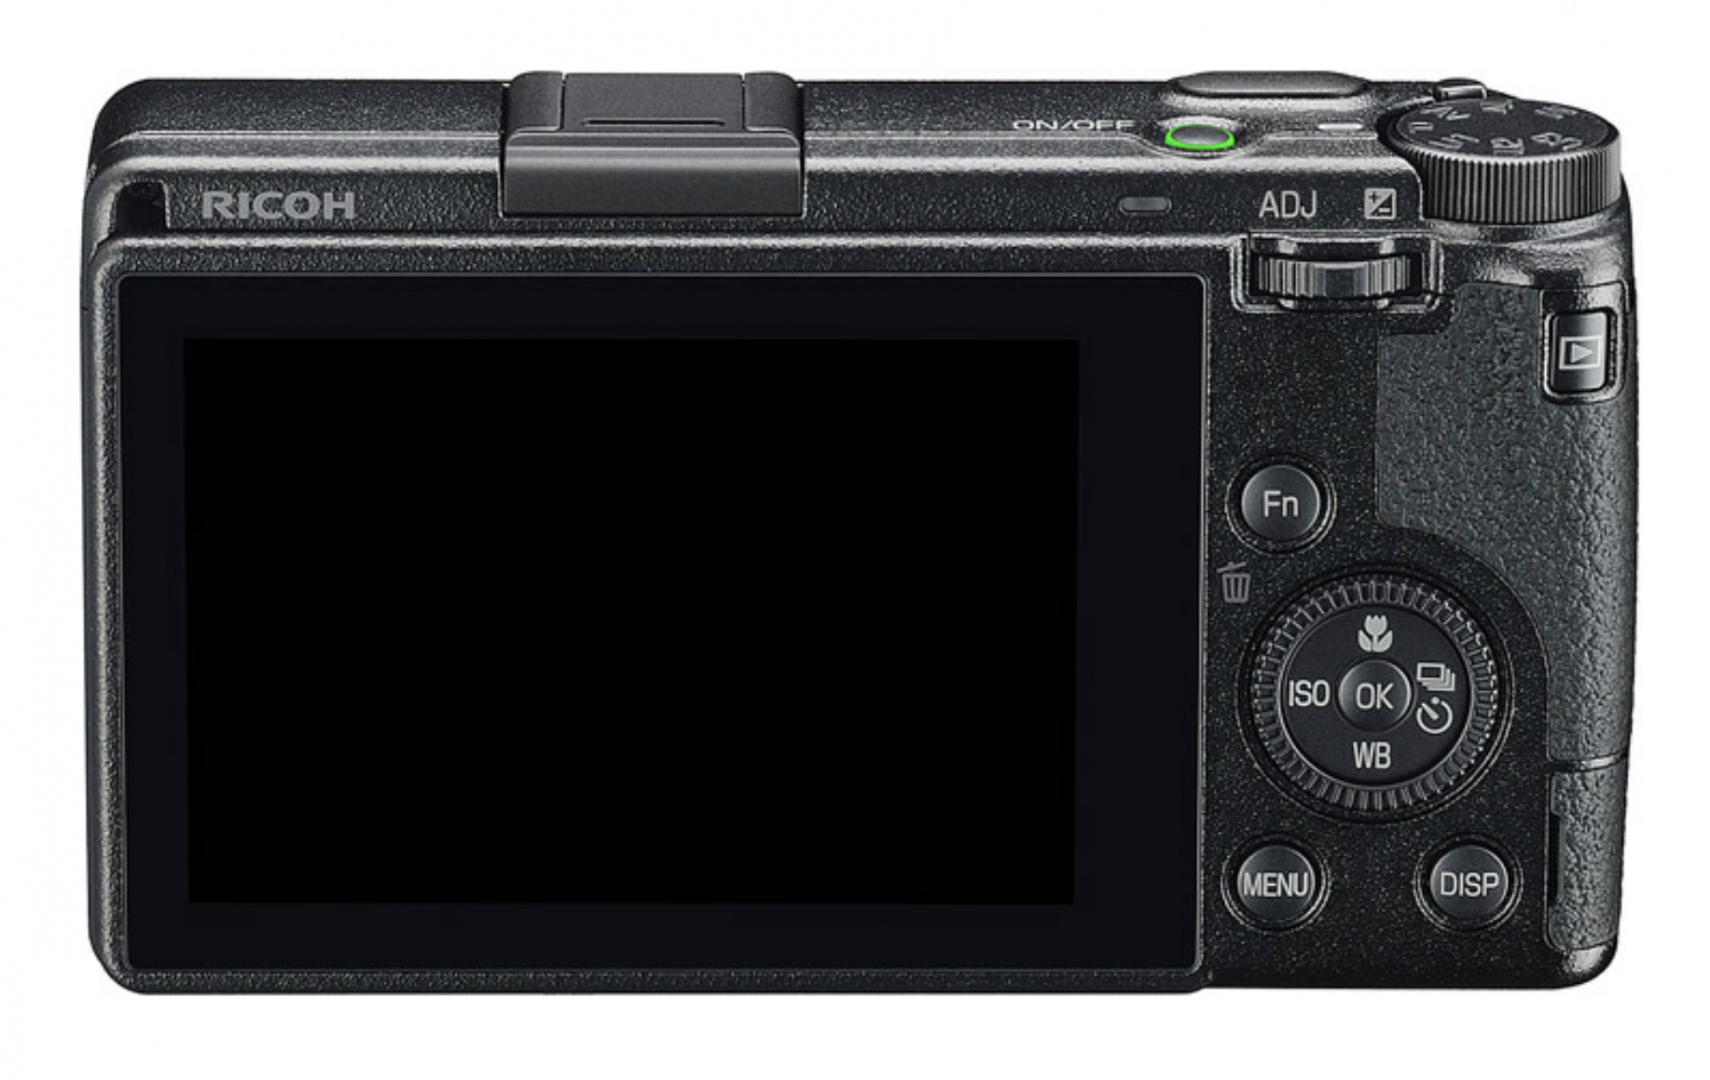 Simplified control layout and larger screen (with touch functions) sets the GR III apart. The previous rocker compensation dial (in the same postition as the play button on the GRIII) has disappeared. Instead, the ADJ wheel is used to alter exposure compensation. The flash has gone in the interests of screen size and length